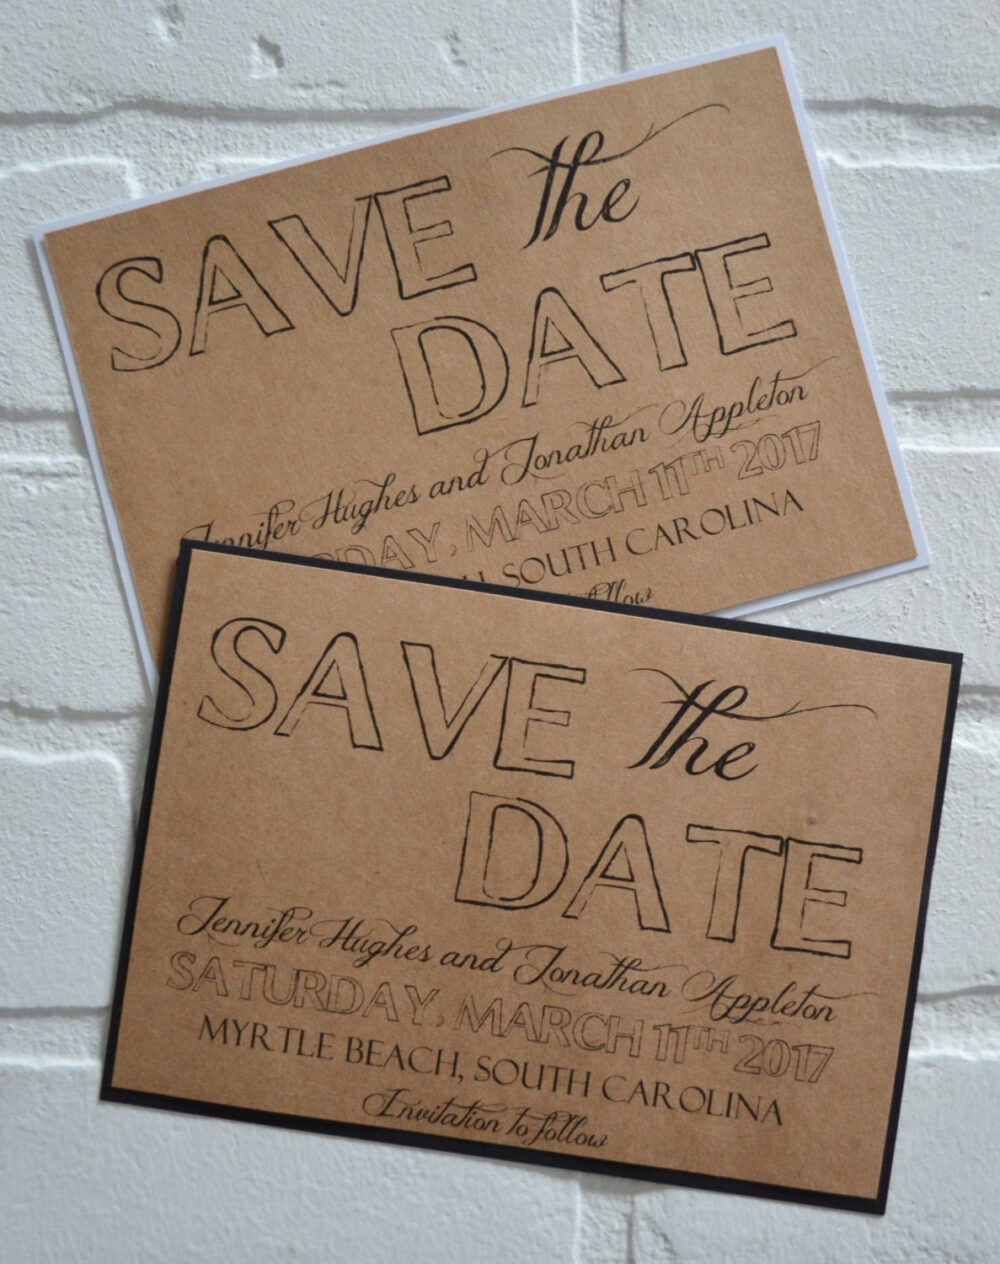 Save The Date Cards Kraft Rustic Save-The-Date Cards Black White Save Dates Outside Country Chic Classy Elegant Card